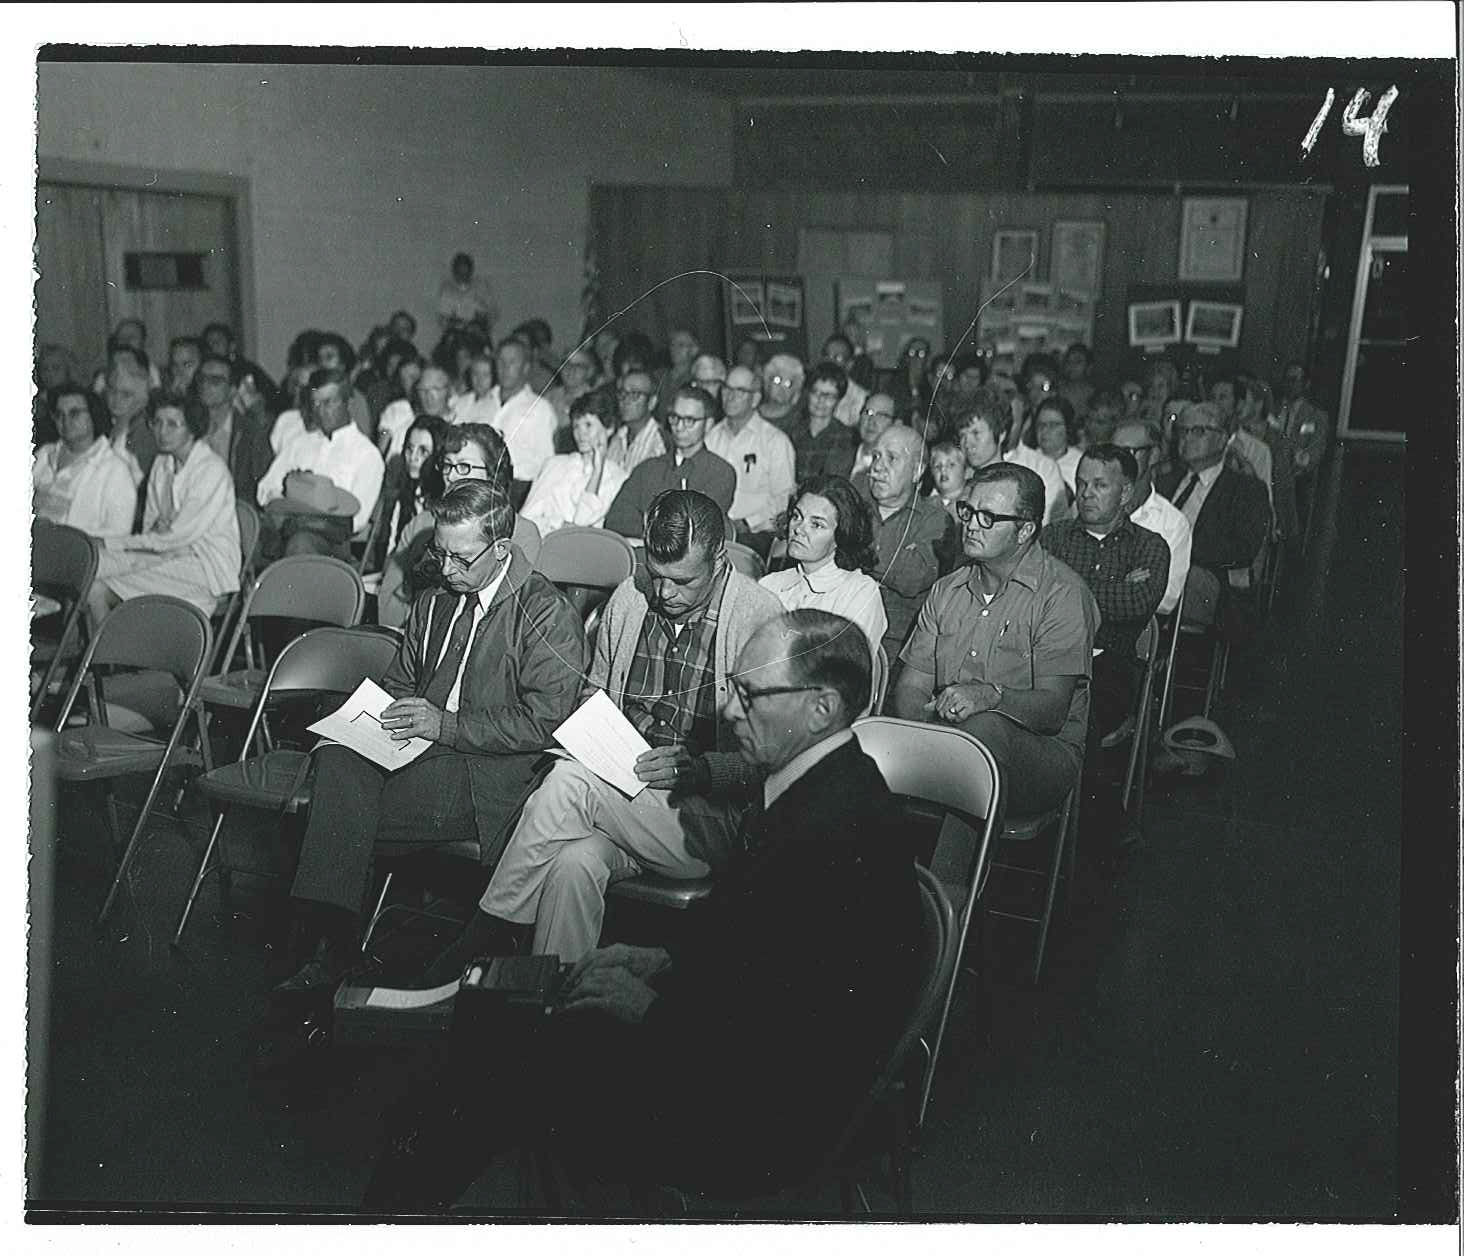 1972 public meeting audience